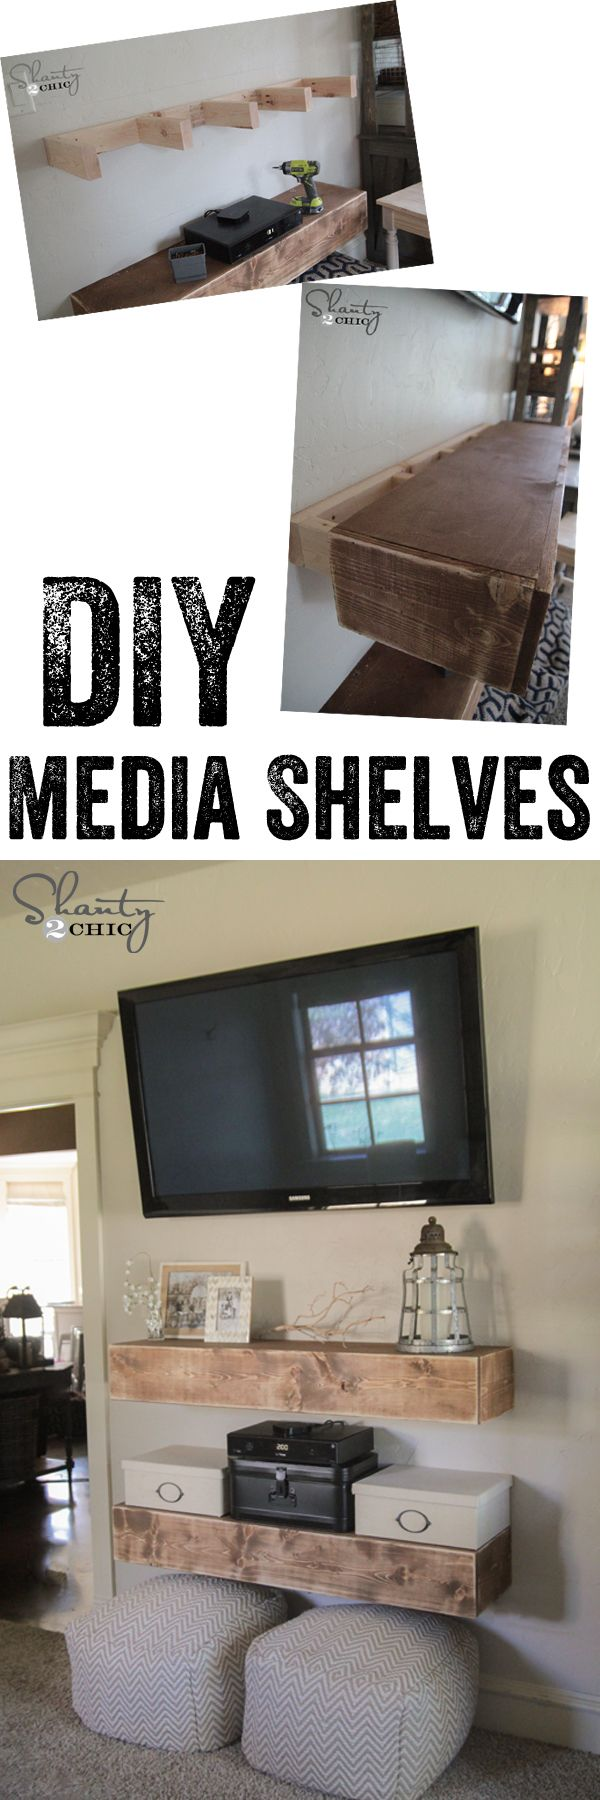 Floating shelvesLOVE these DIY Media Shelves! Great solution for under the TV! Free Woodworking Plans www.shanty-2-chic.com